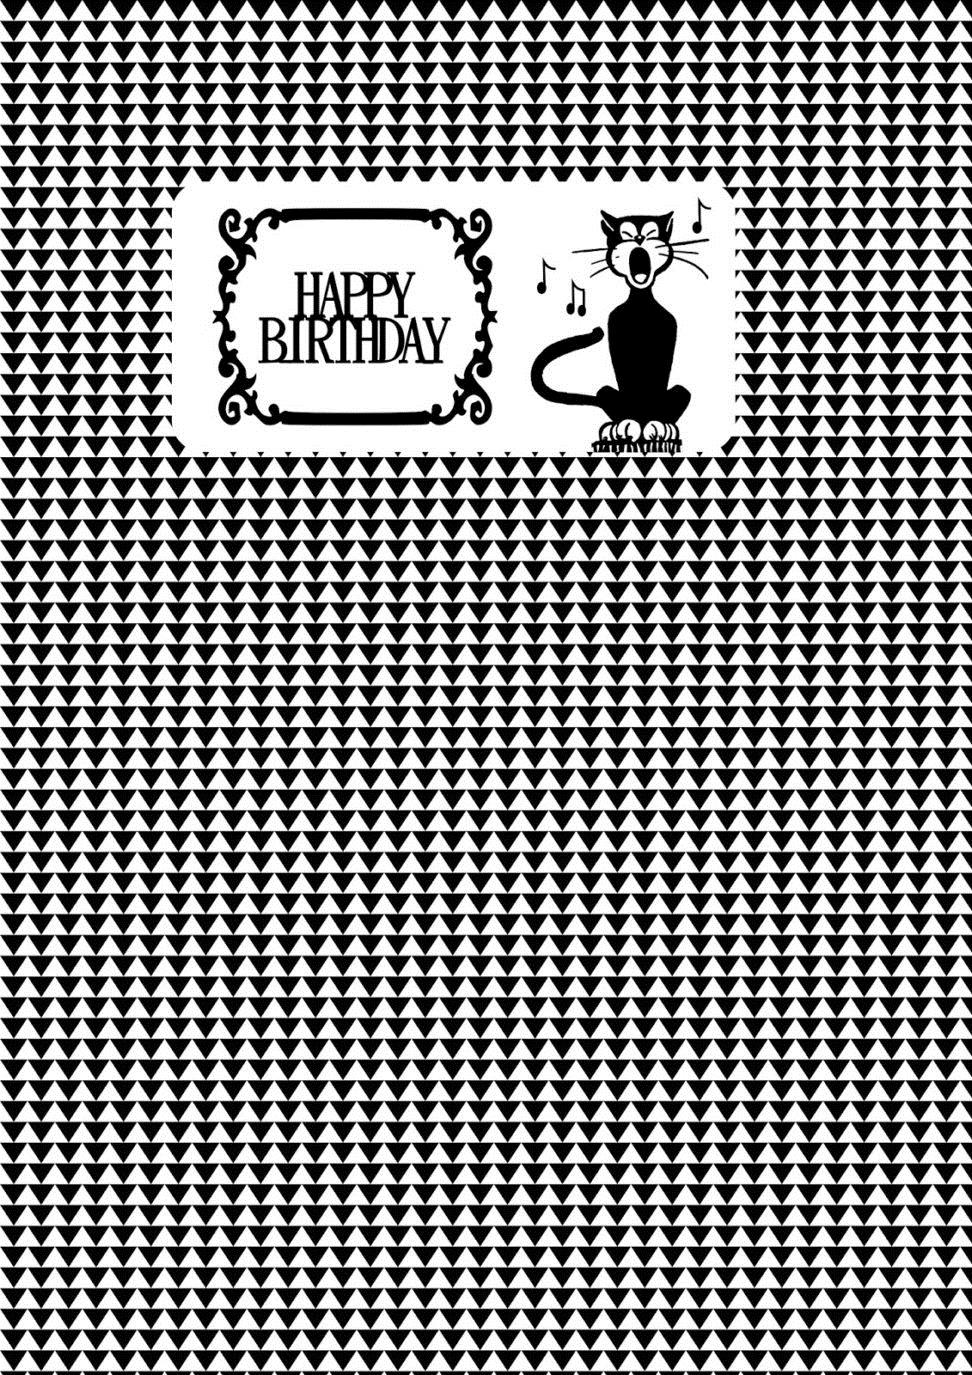 free printable birthday wrapping paper ; free-printable-birthday-chocolate-wrap-paper-ausdruckbares-papers-a-972x1375